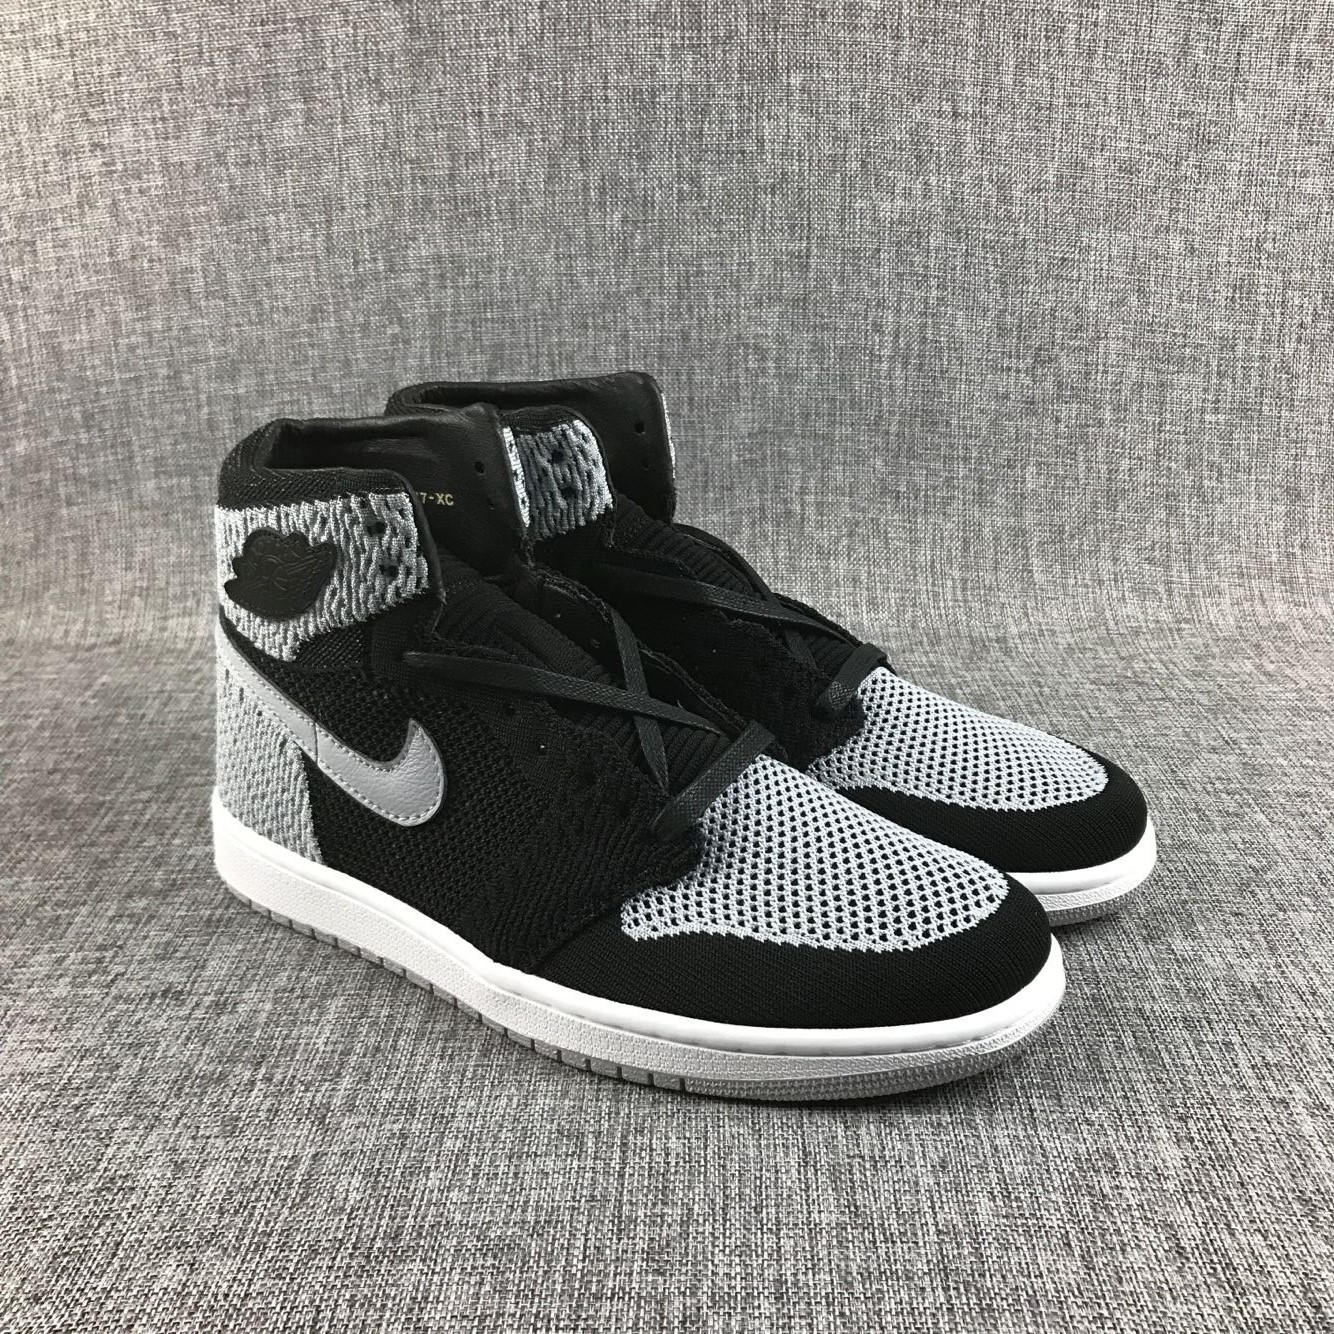 New Air Jordan 1 Flyknit Black Grey Shoes